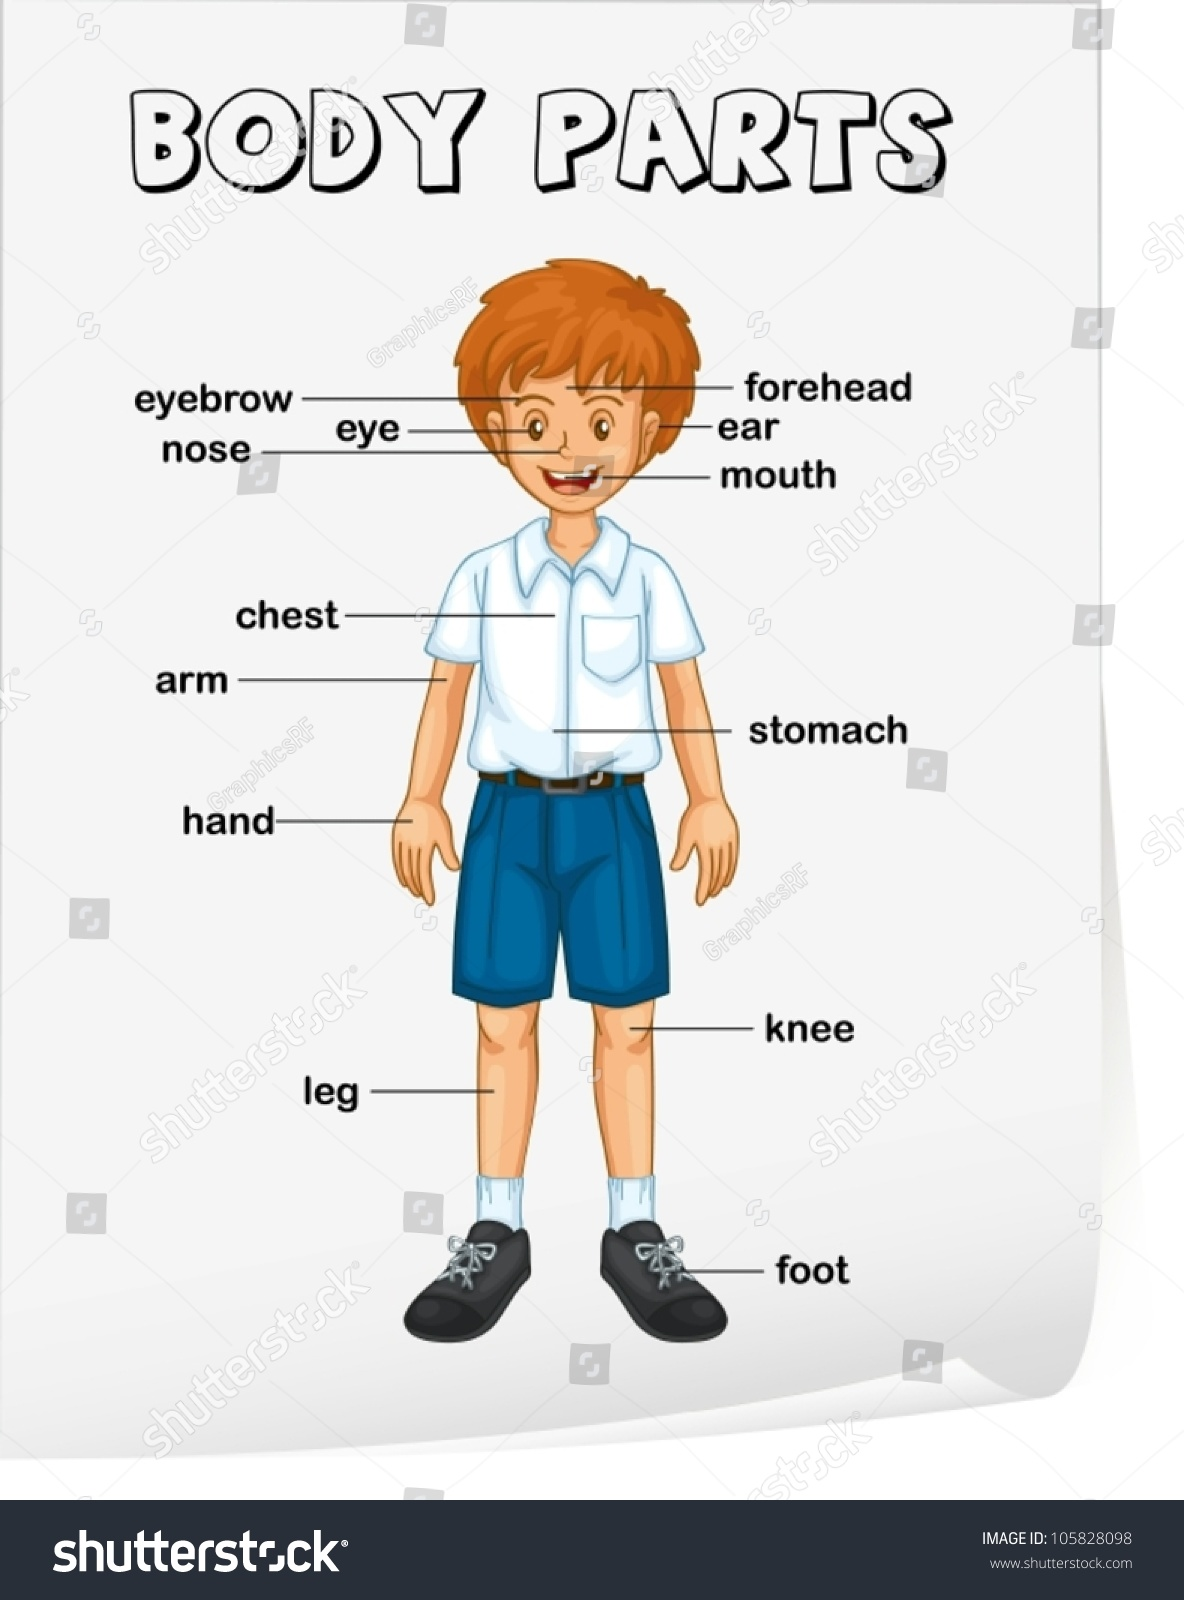 human body parts name with picture in english pdf download